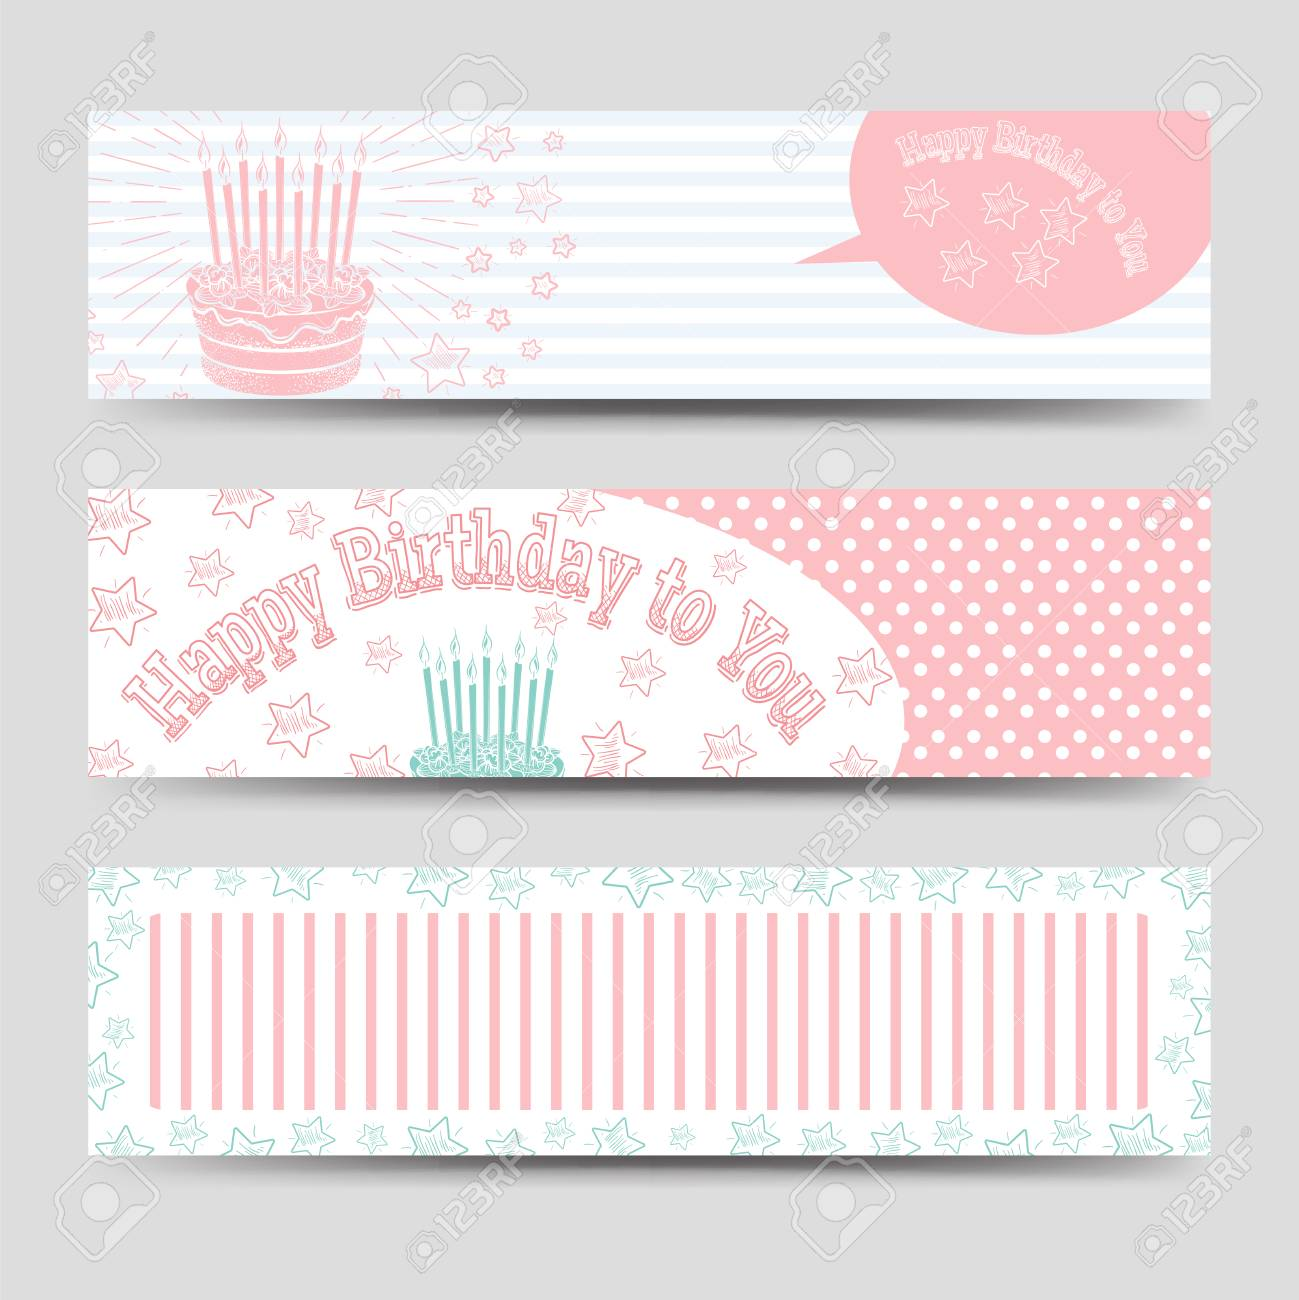 birthday banners template with cake stars and happy birthday